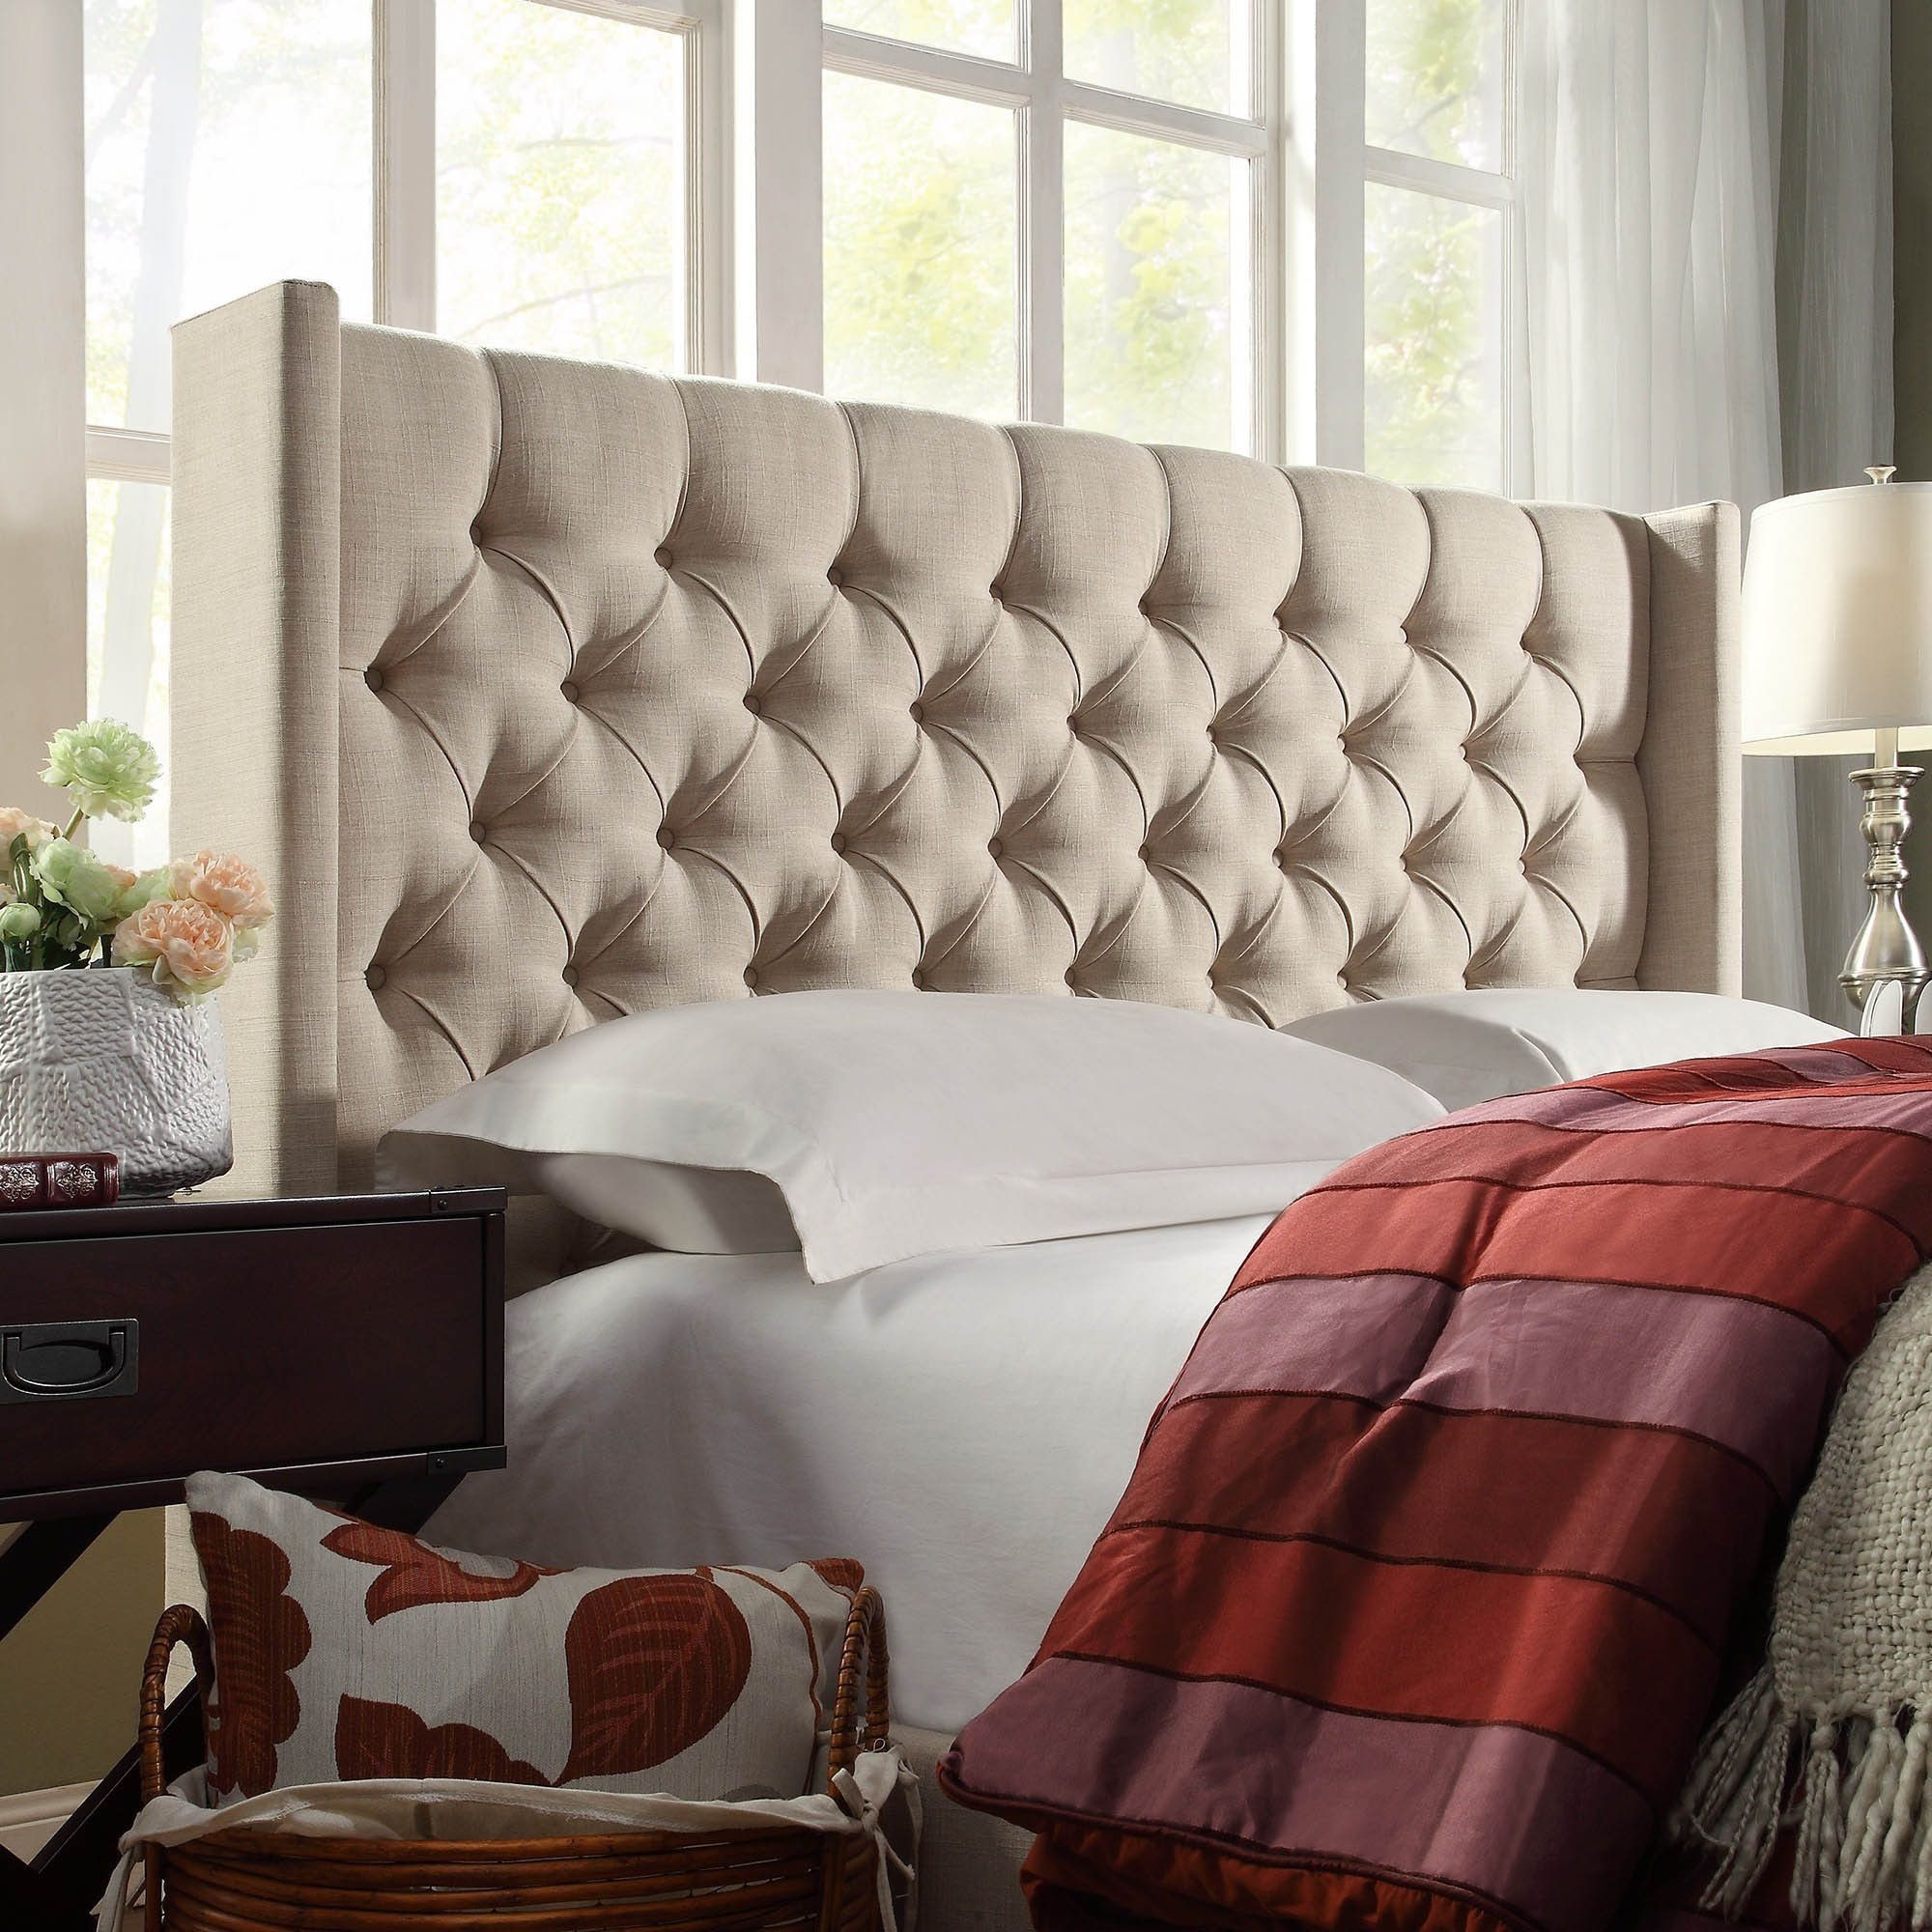 Complete an elegant bedroom with this Naples Collection headboard.  Featuring a wingback shape, the